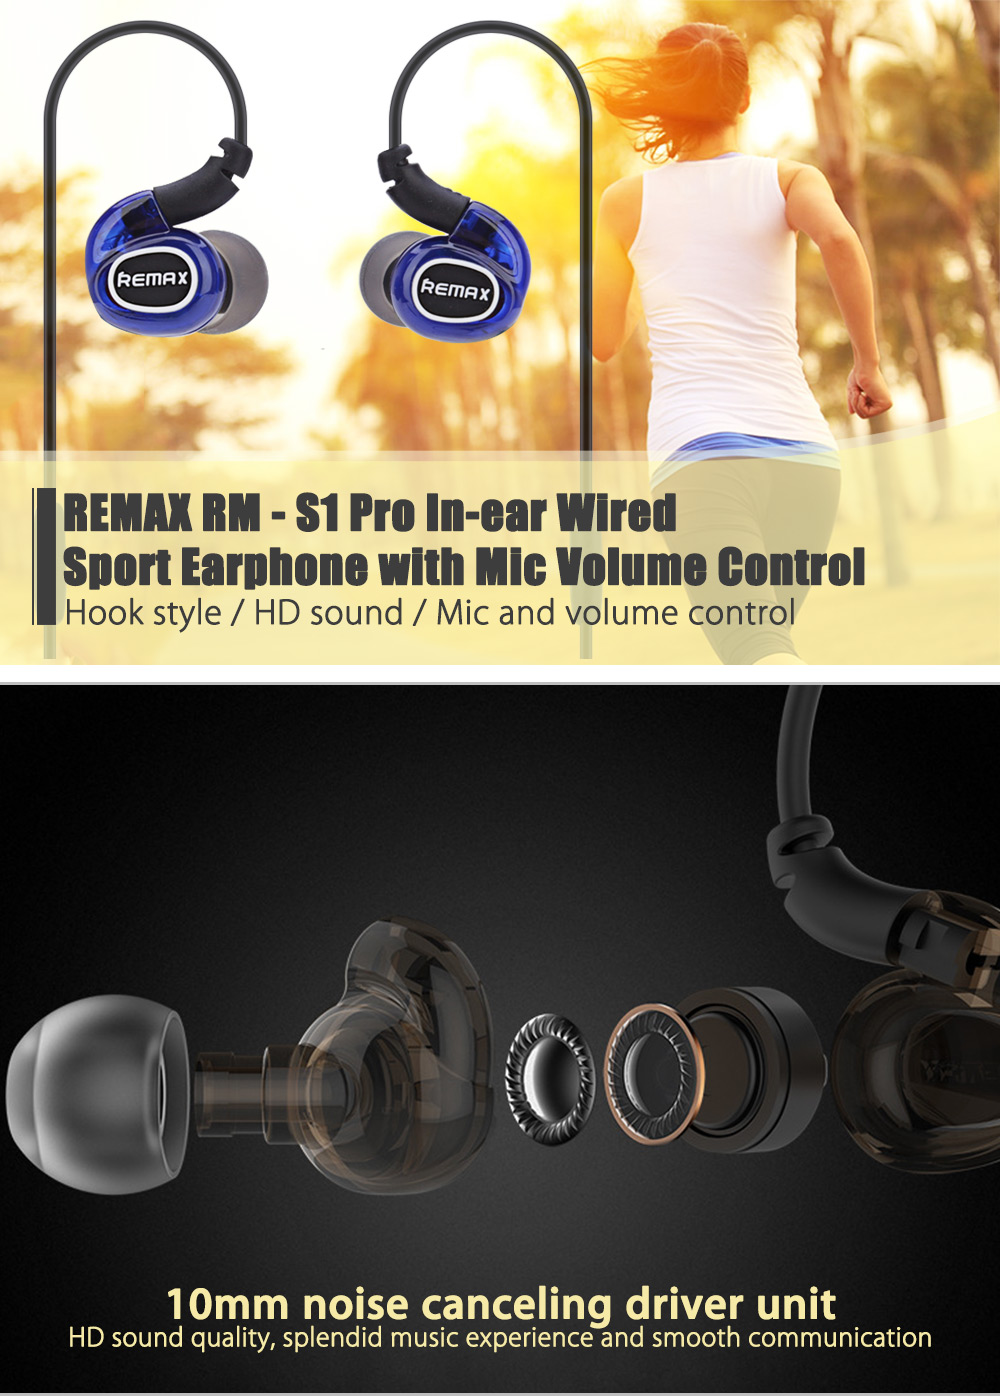 REMAX RM - S1 Pro In-ear Wired Sport Earphone with Mic Volume Control